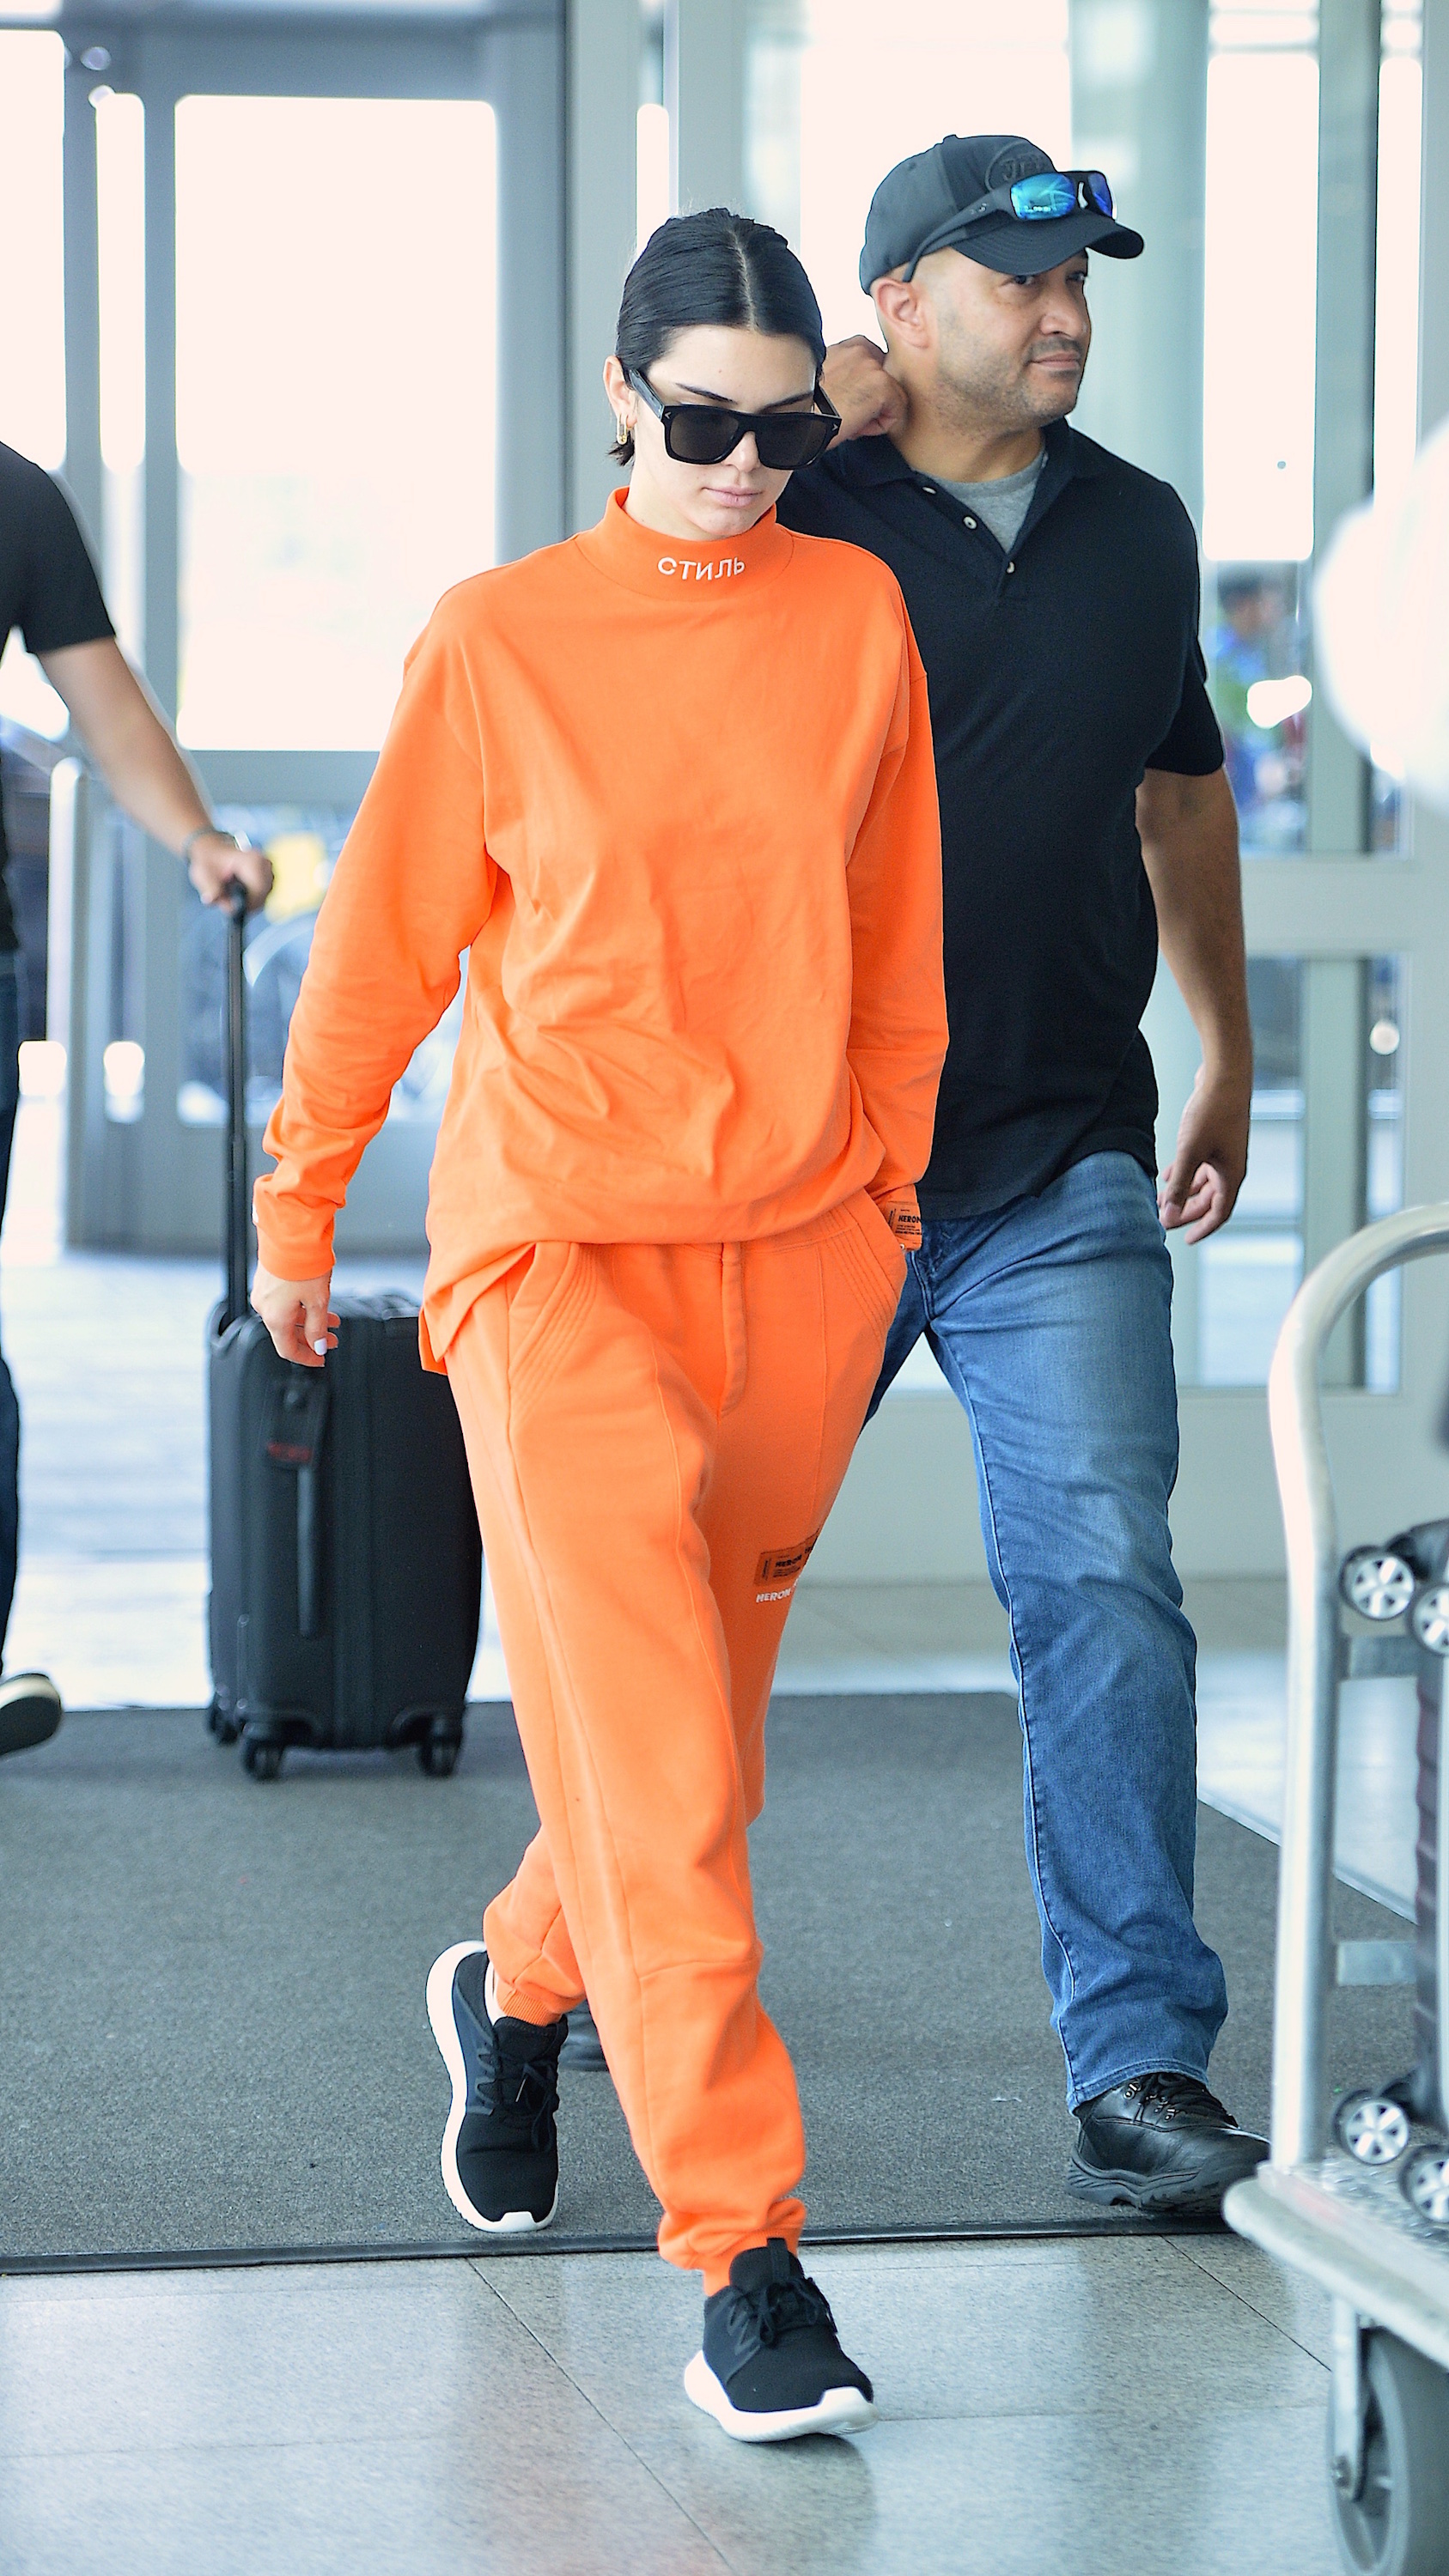 Miss-Kendall Jenner in Heron Preston<br /> <br /> Memo to Kendall: Orange is not the new black. Normally the supermodel stops traffic in a good way but this amber alert has us feeling uncertain.